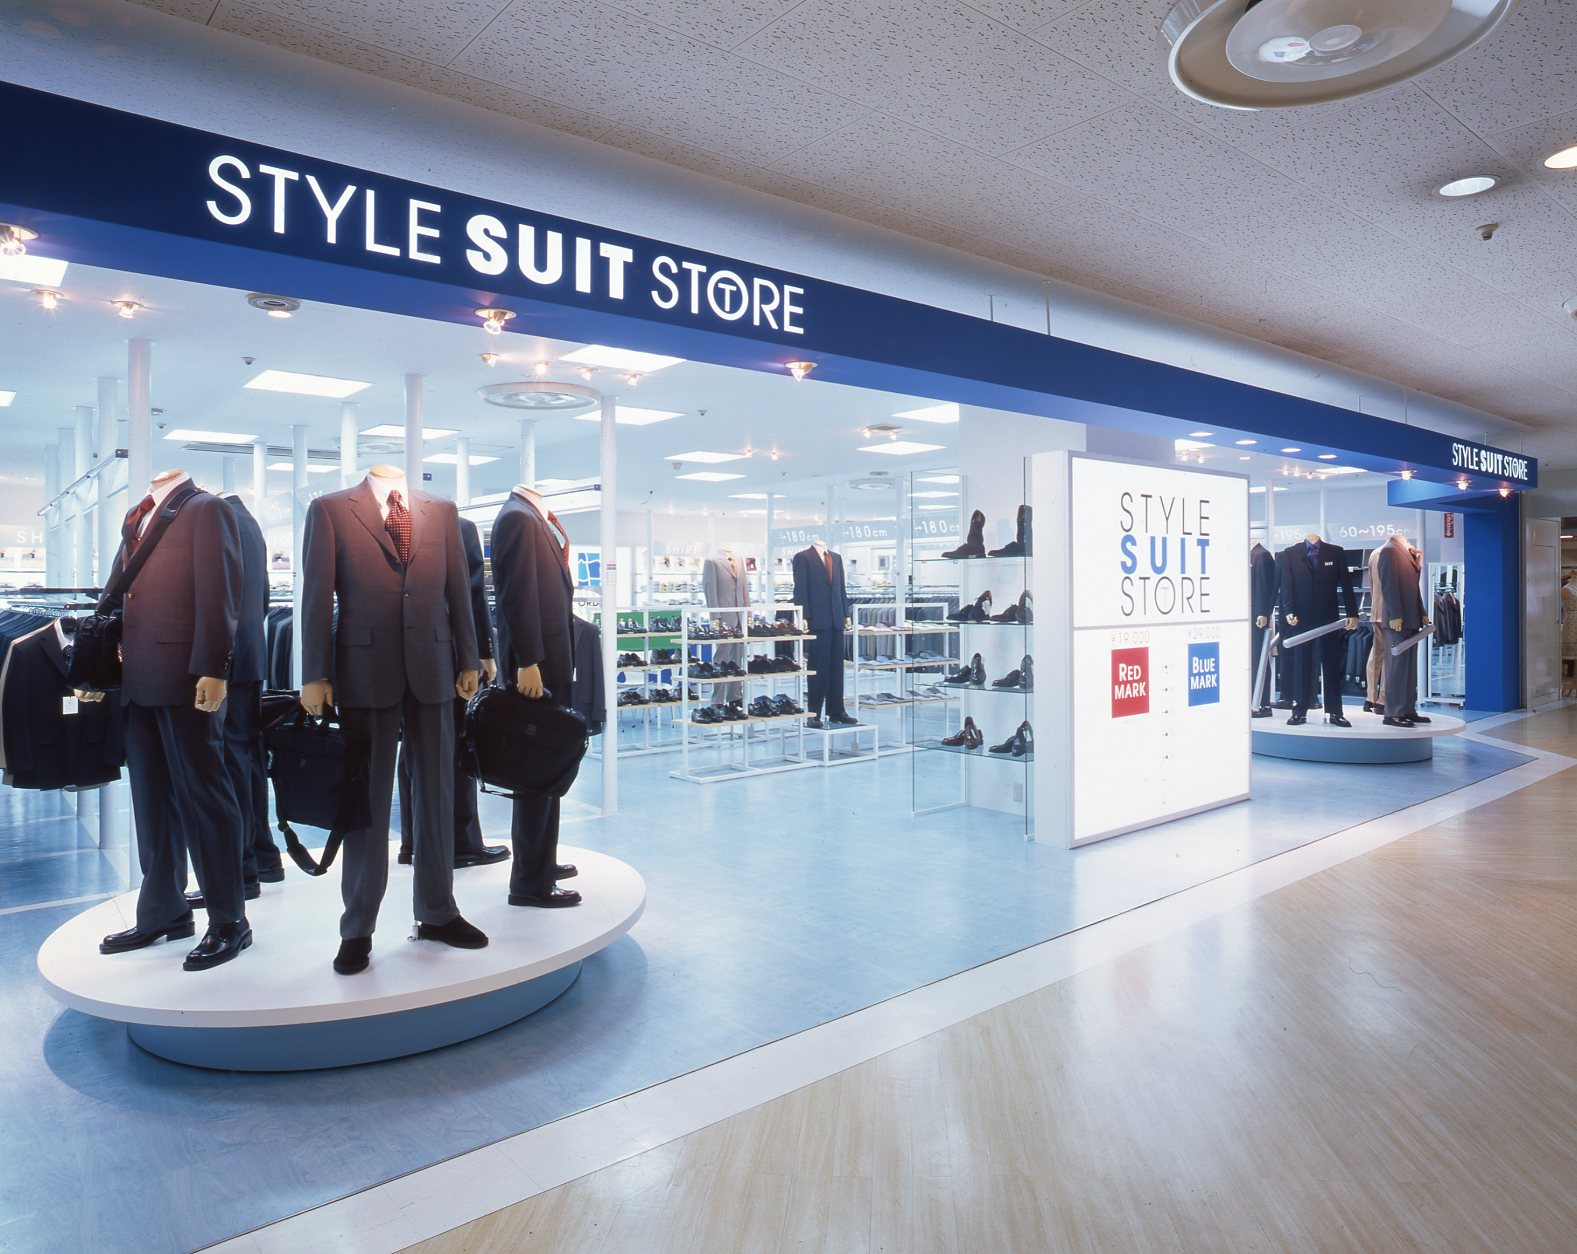 STYLE SUIT STORE